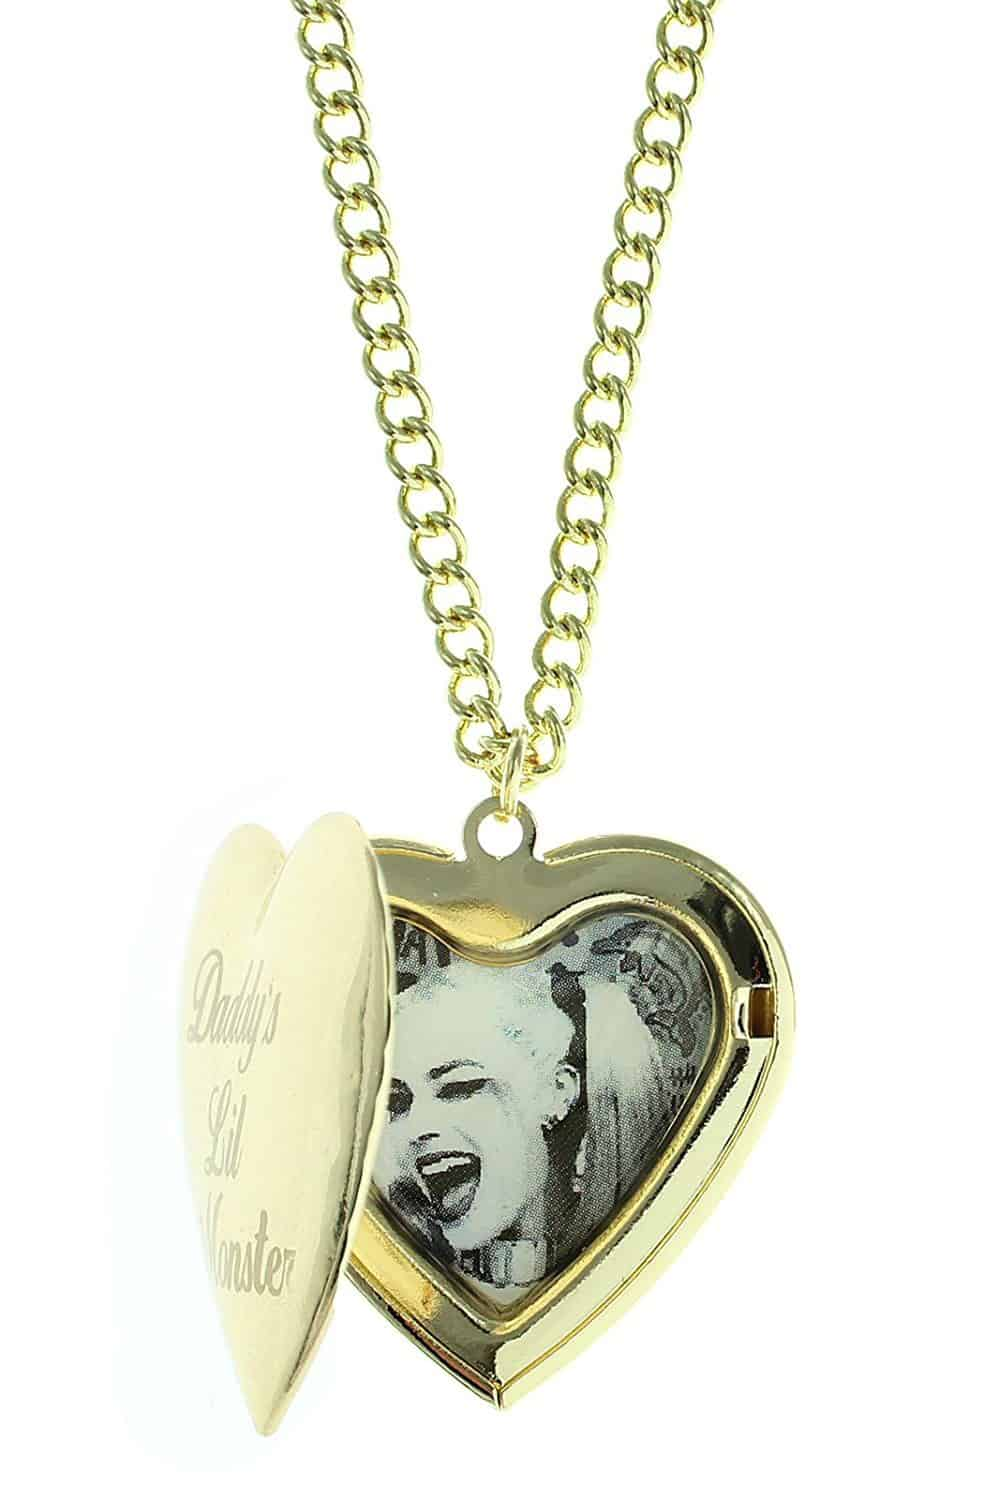 Daddy's Lil Monster Locket Necklace